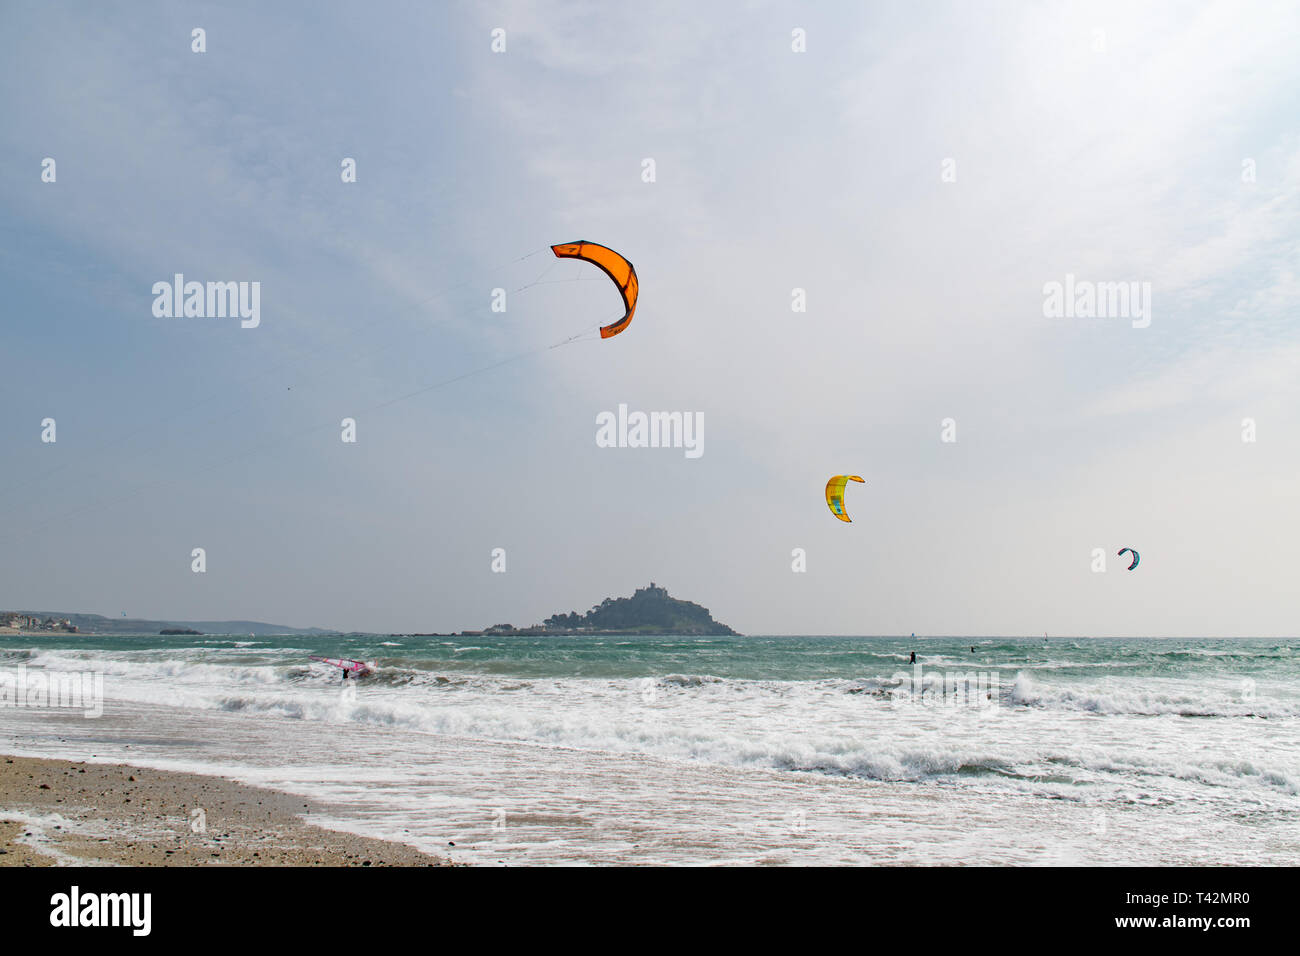 Marazion, Cornwall, UK. 13th April 2019. UK Weather.  Windsurfer and Kitesurfers were out in force on the sea at Marazion, making the most of the very windy conditions. Credit: Simon Maycock/Alamy Live News Stock Photo